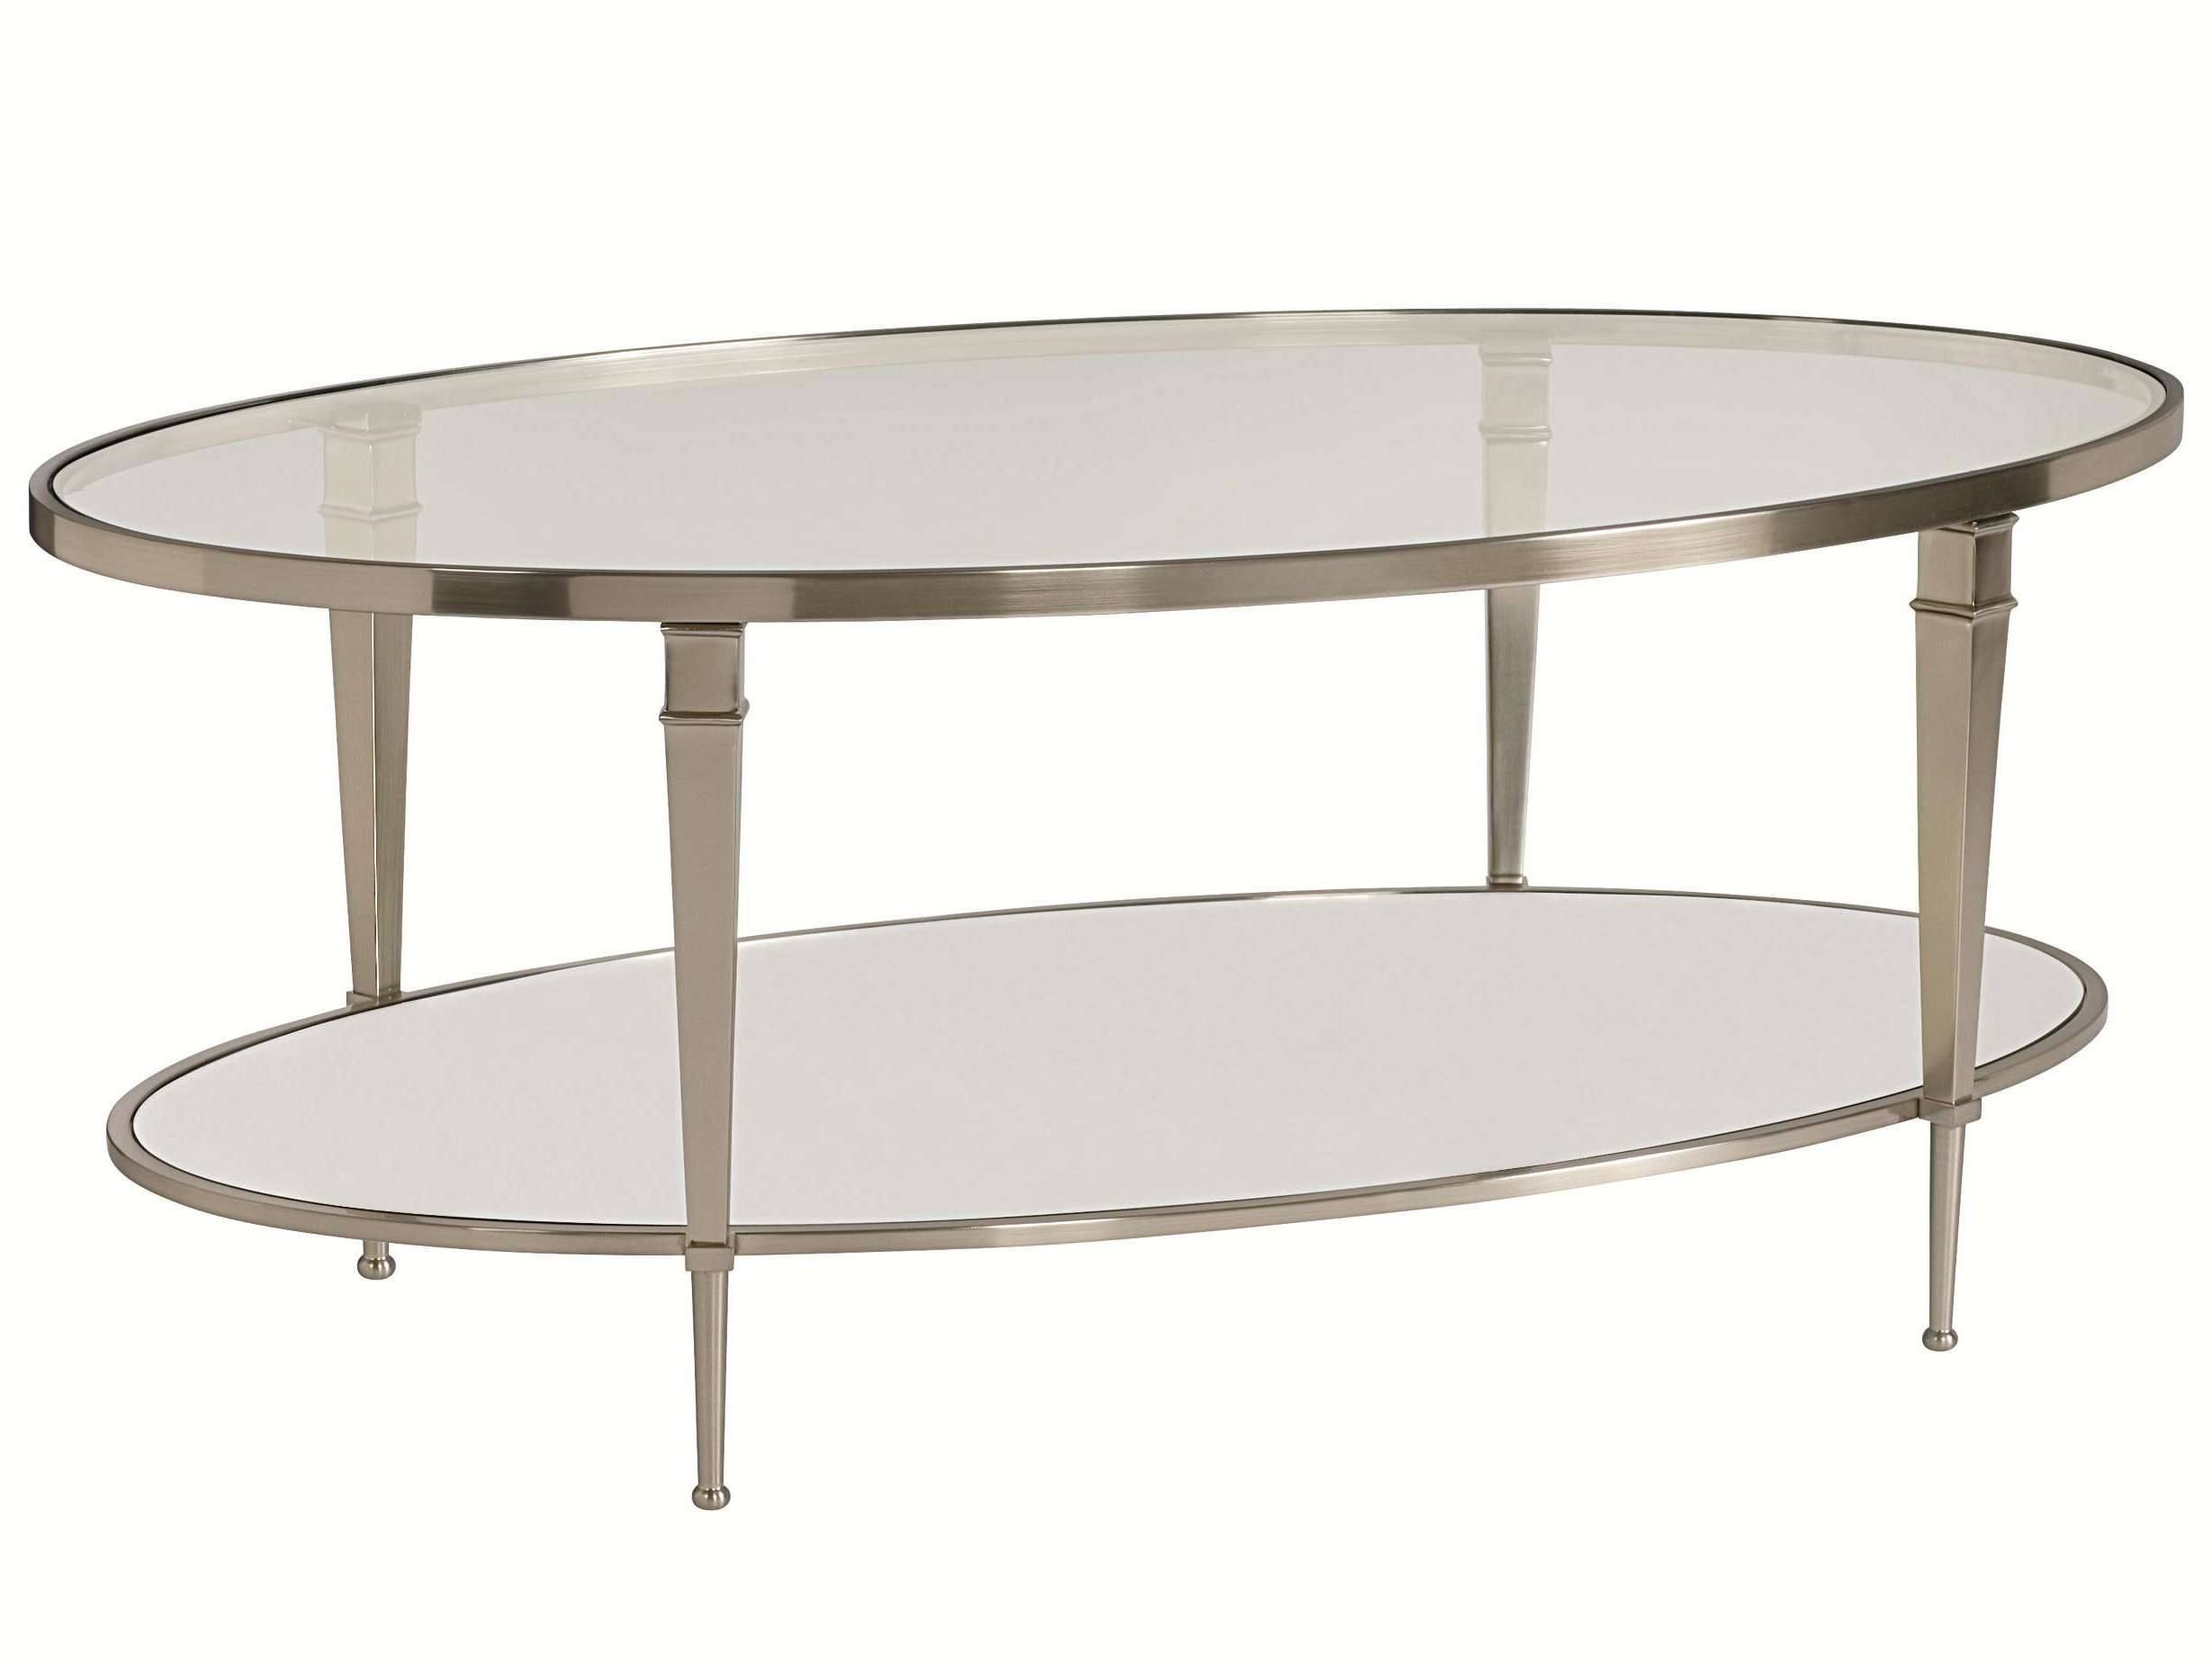 Oval Satin Nickel Antique Mirror Finish Cocktail Tablehammary Intended For Current Oval Mirrored Coffee Tables (View 19 of 20)